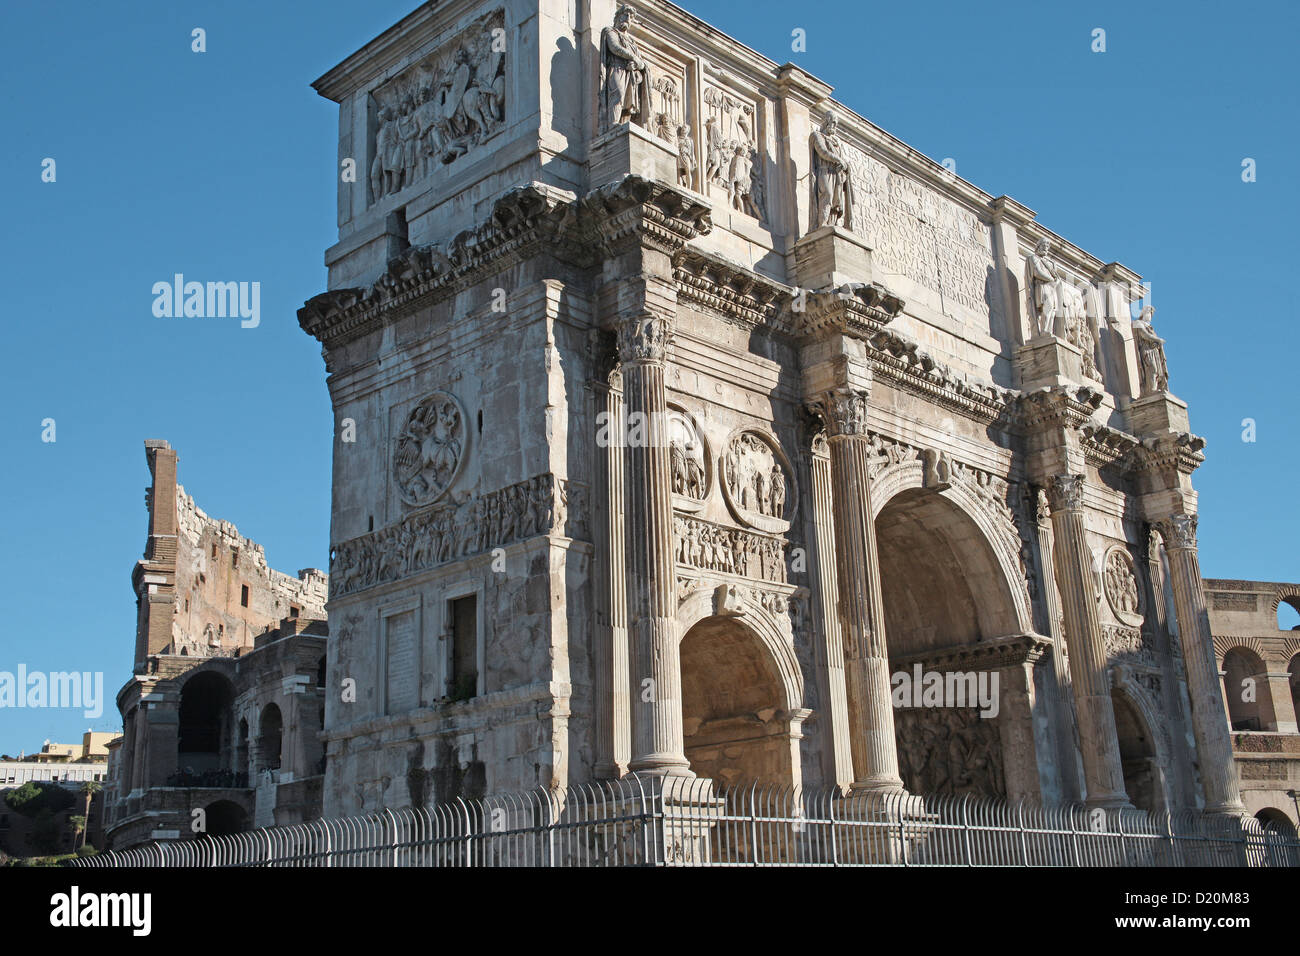 The magnificent Arch of Constantine Rome Italy - Stock Image